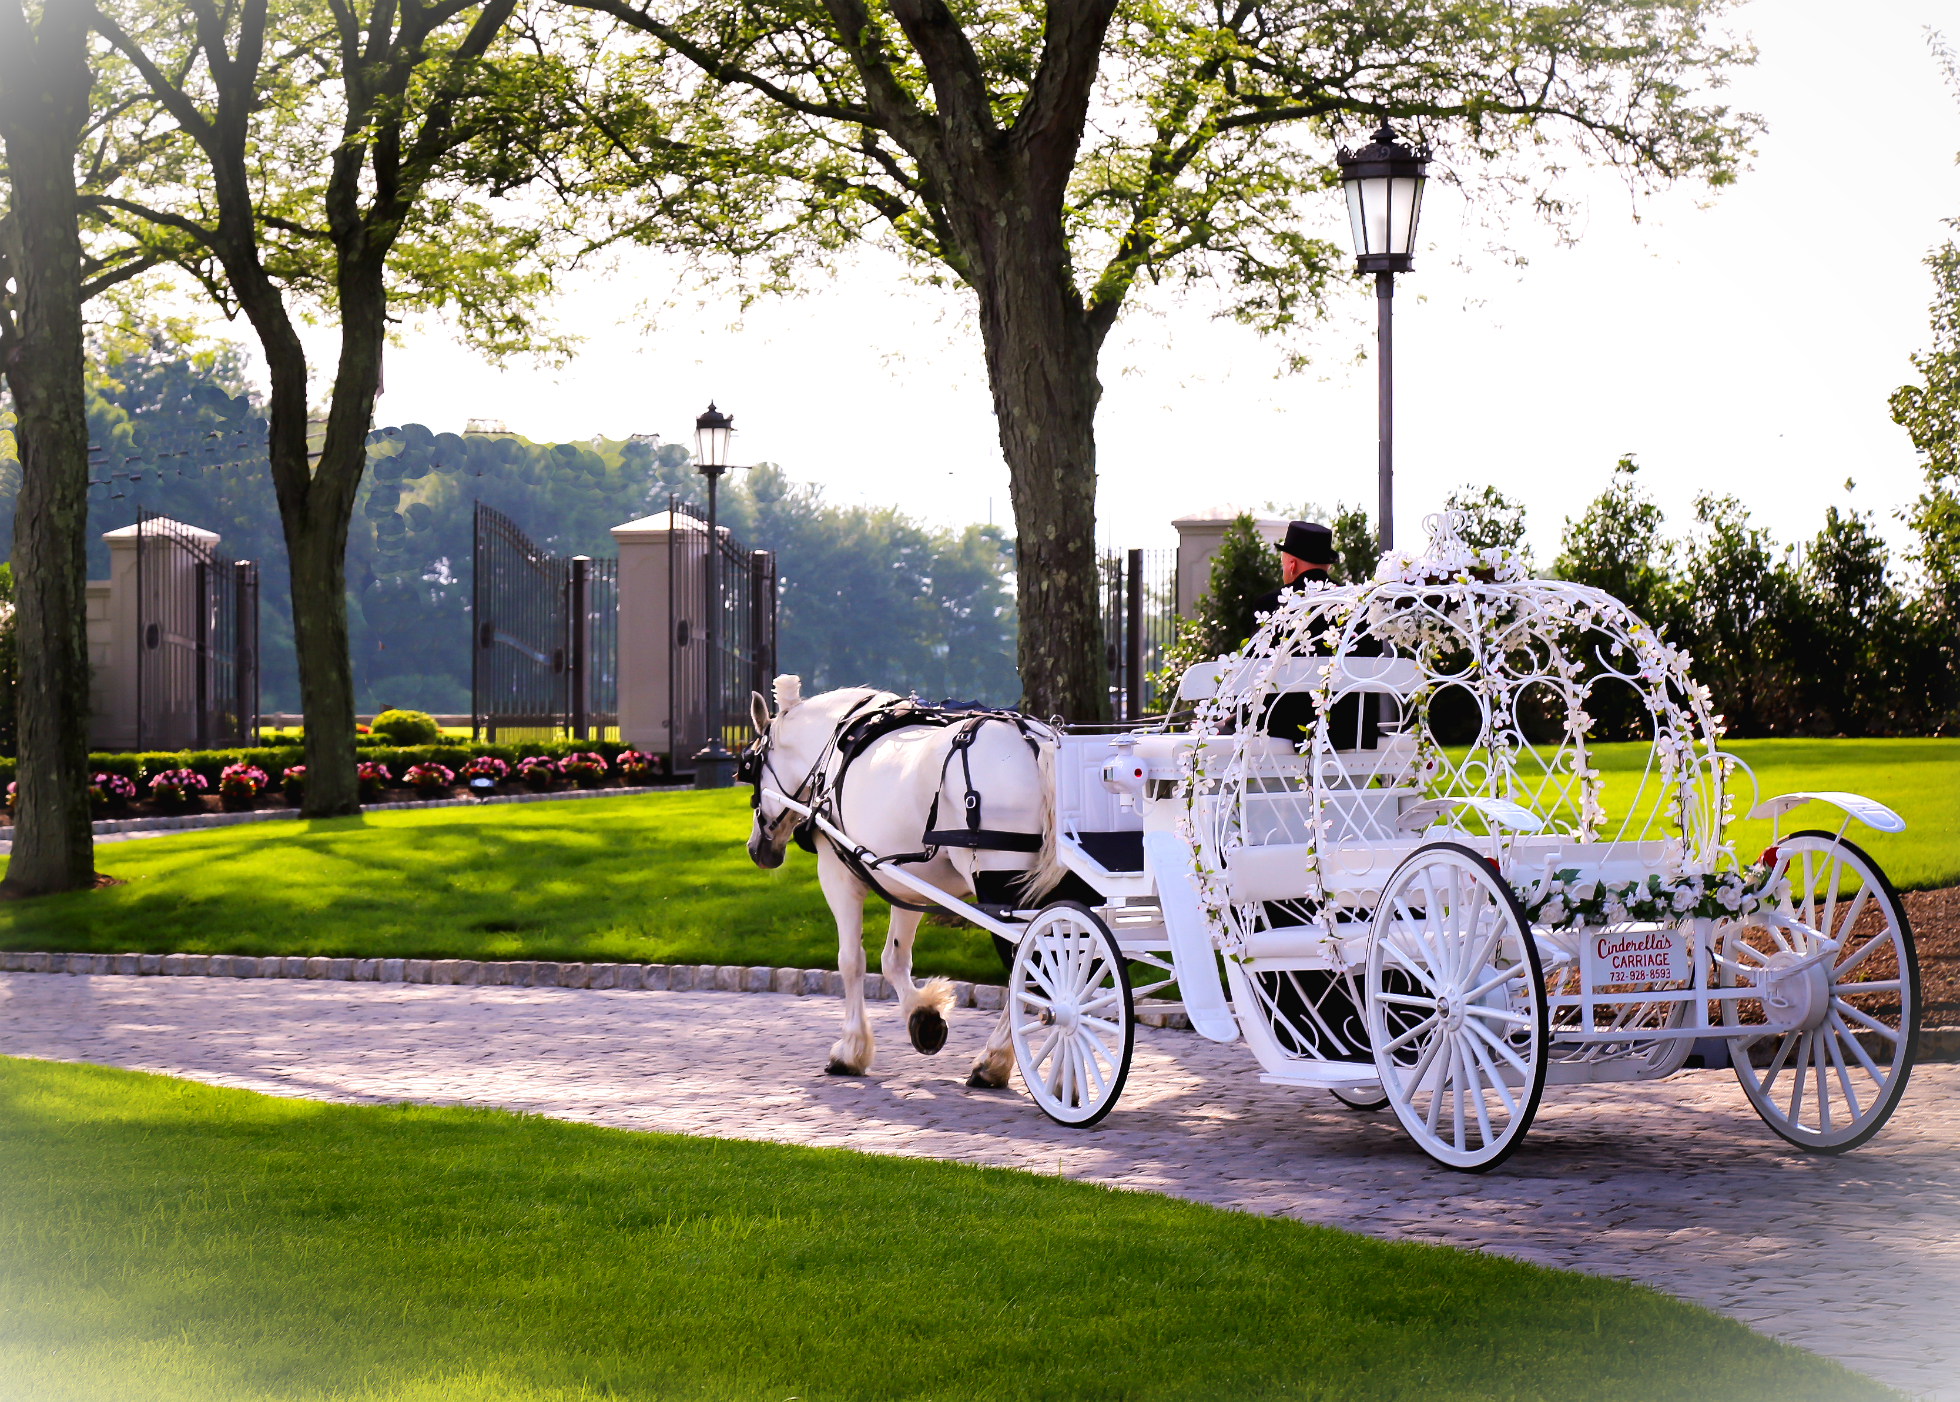 Dream Horse Carriage Ride and Rental Company - Home of the ...